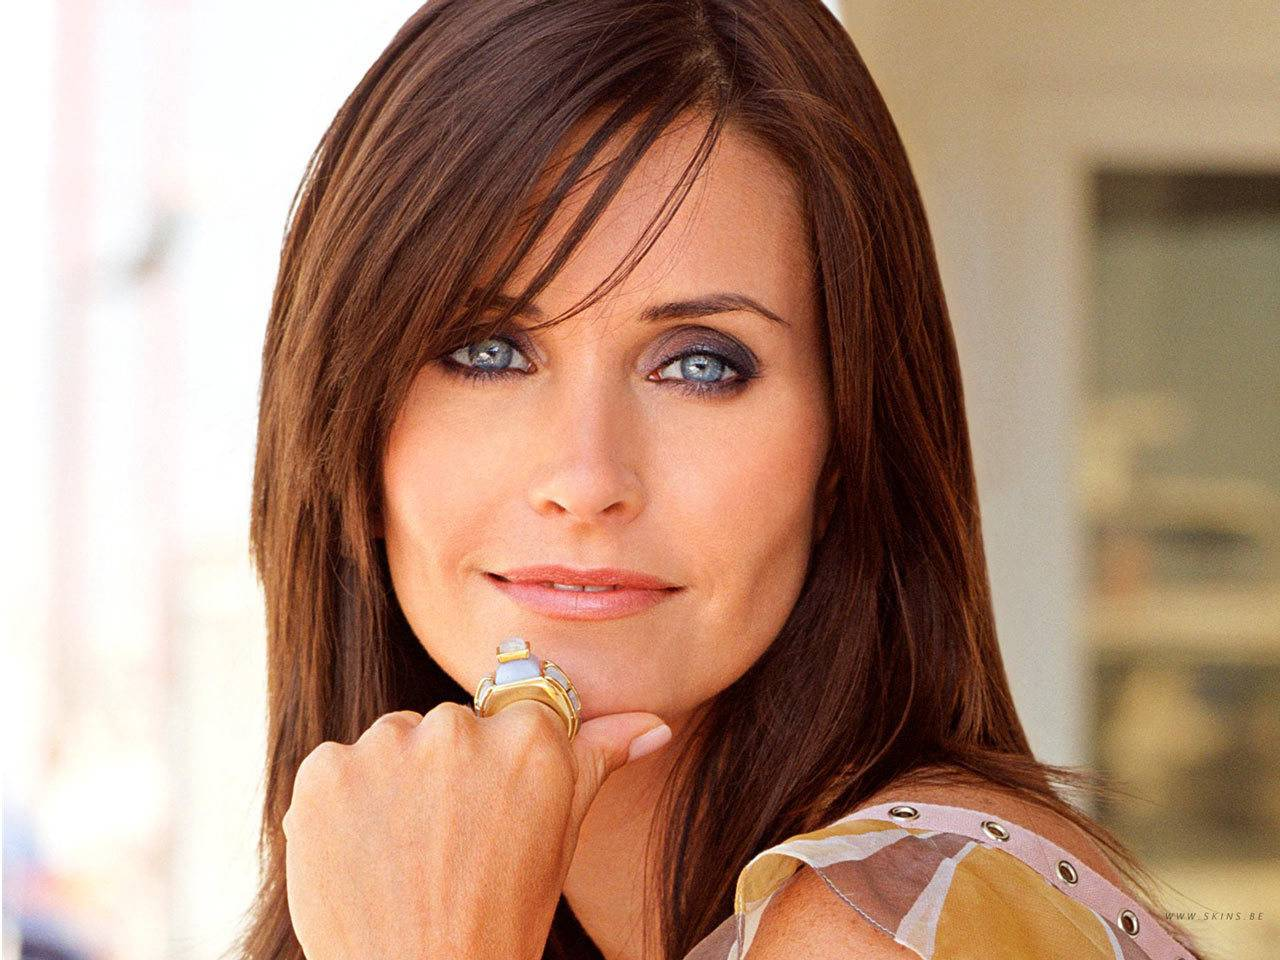 CourtneyCox